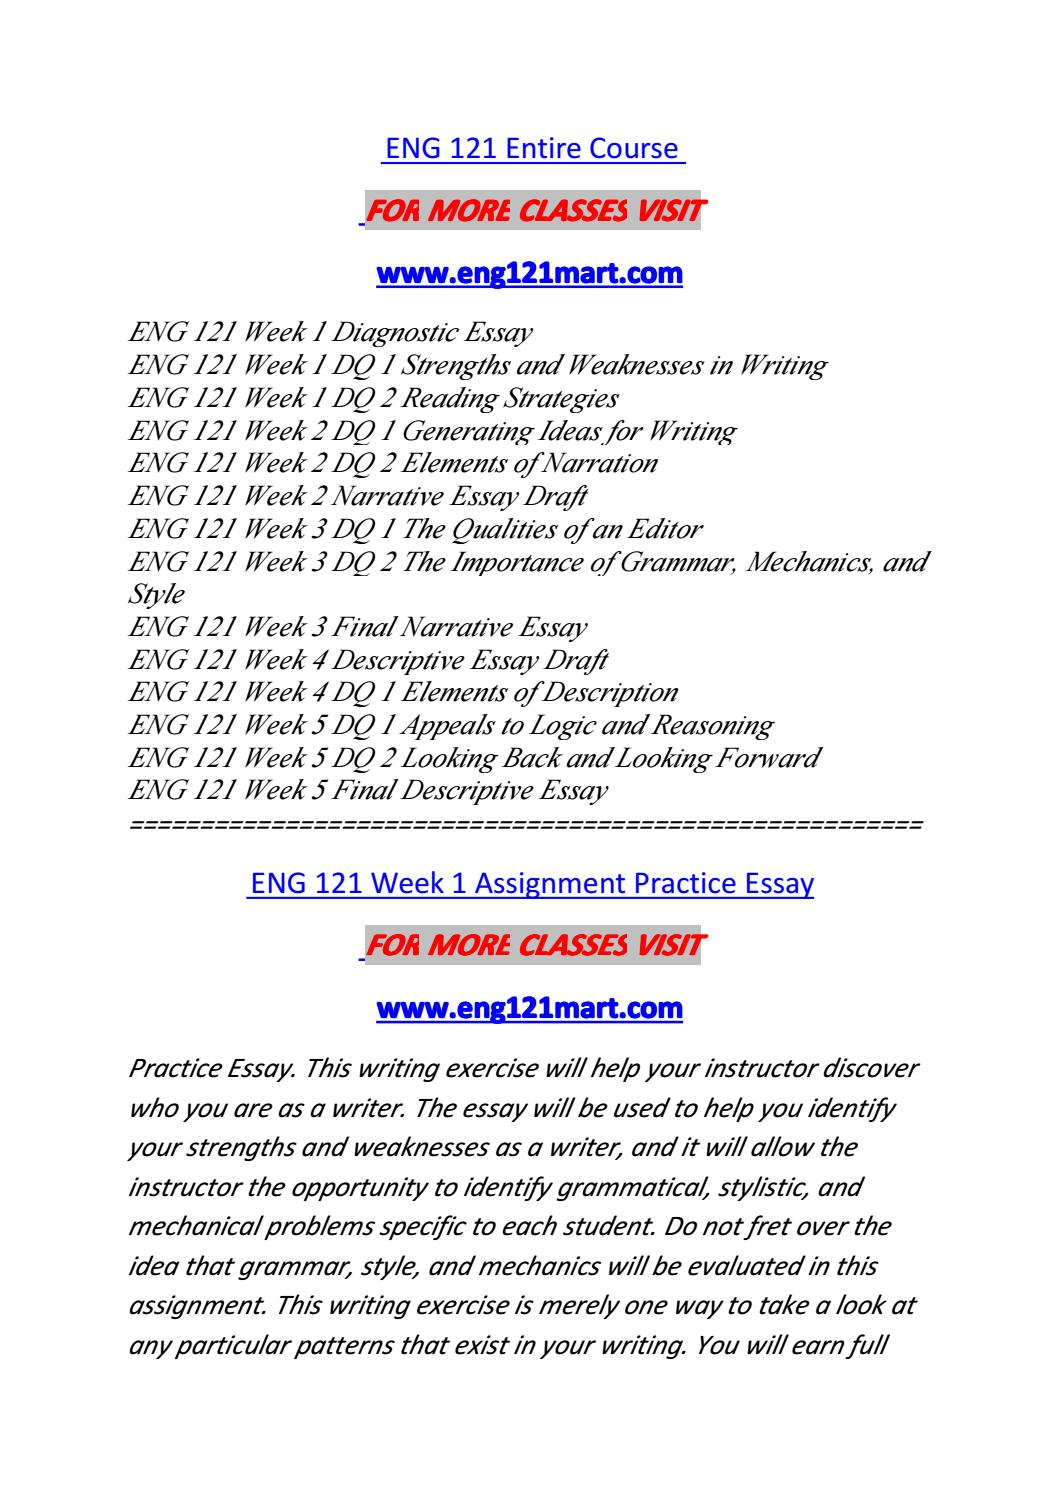 eng 121 entire course Posts about eng 121 entire course material written by leonardodavinci535.